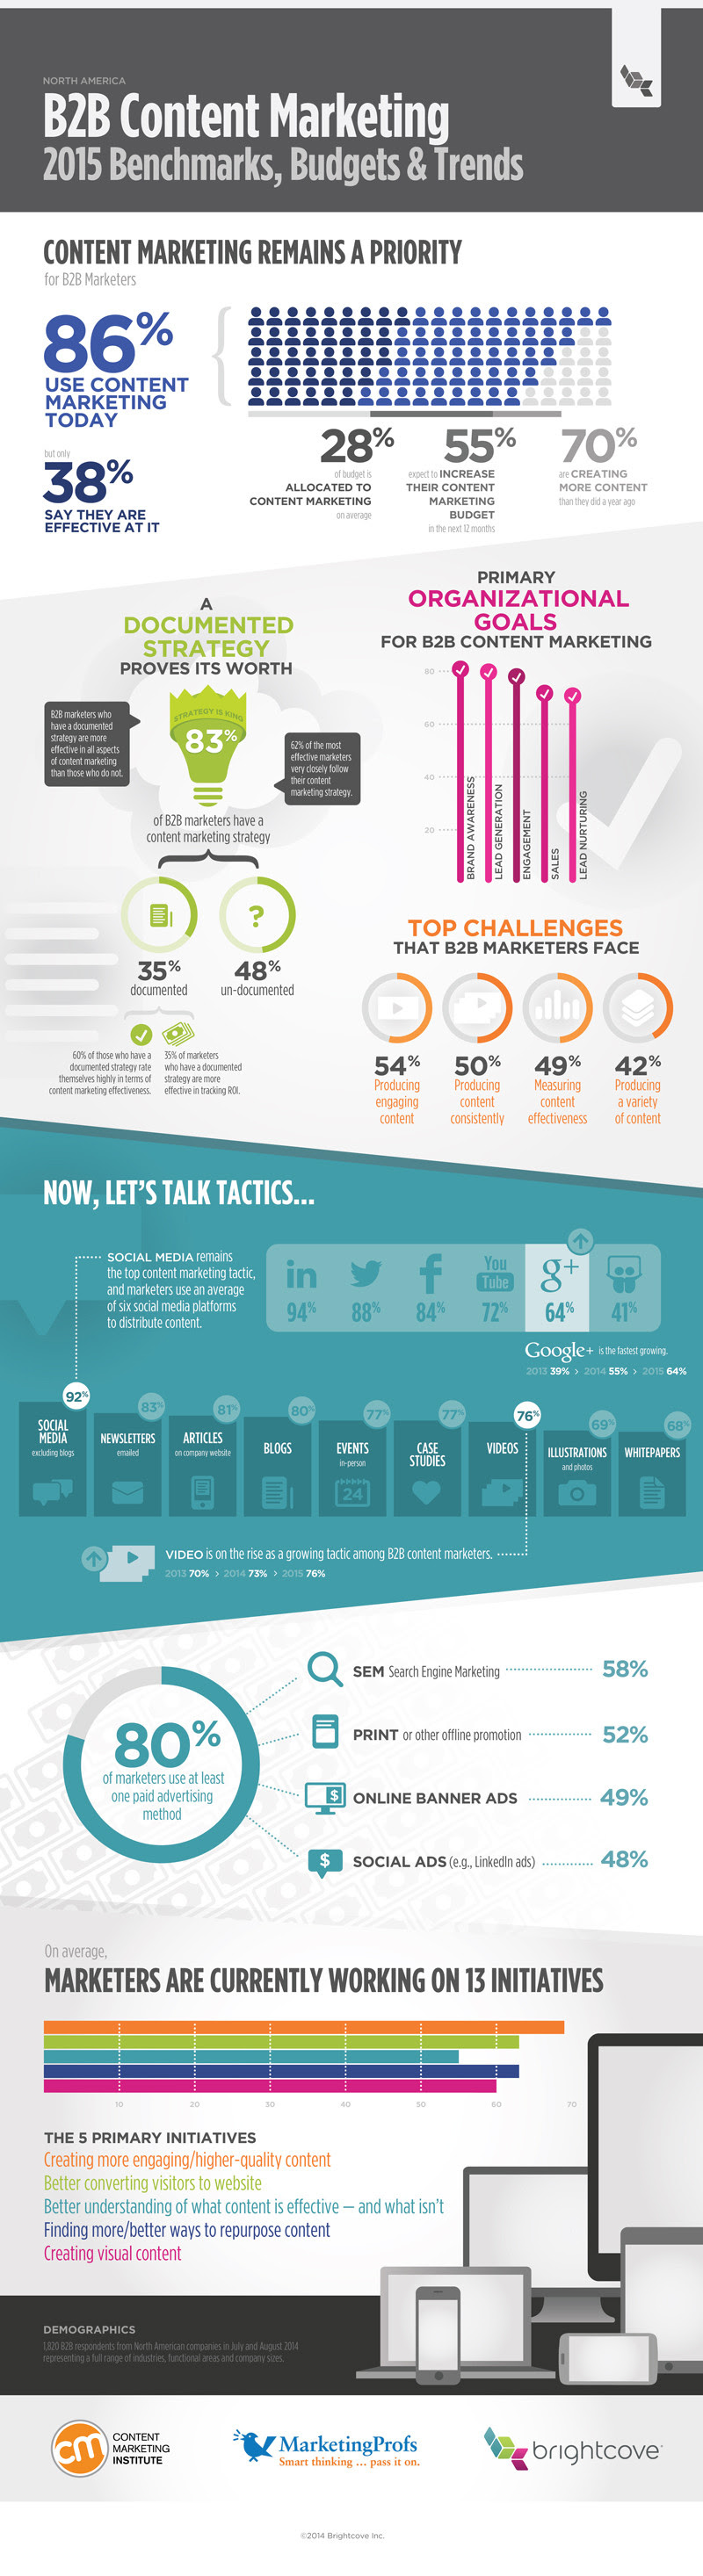 B2B #ContentMarketing: 2015 Benchmarks, Budgets and Trends - #infographic #socialmedia